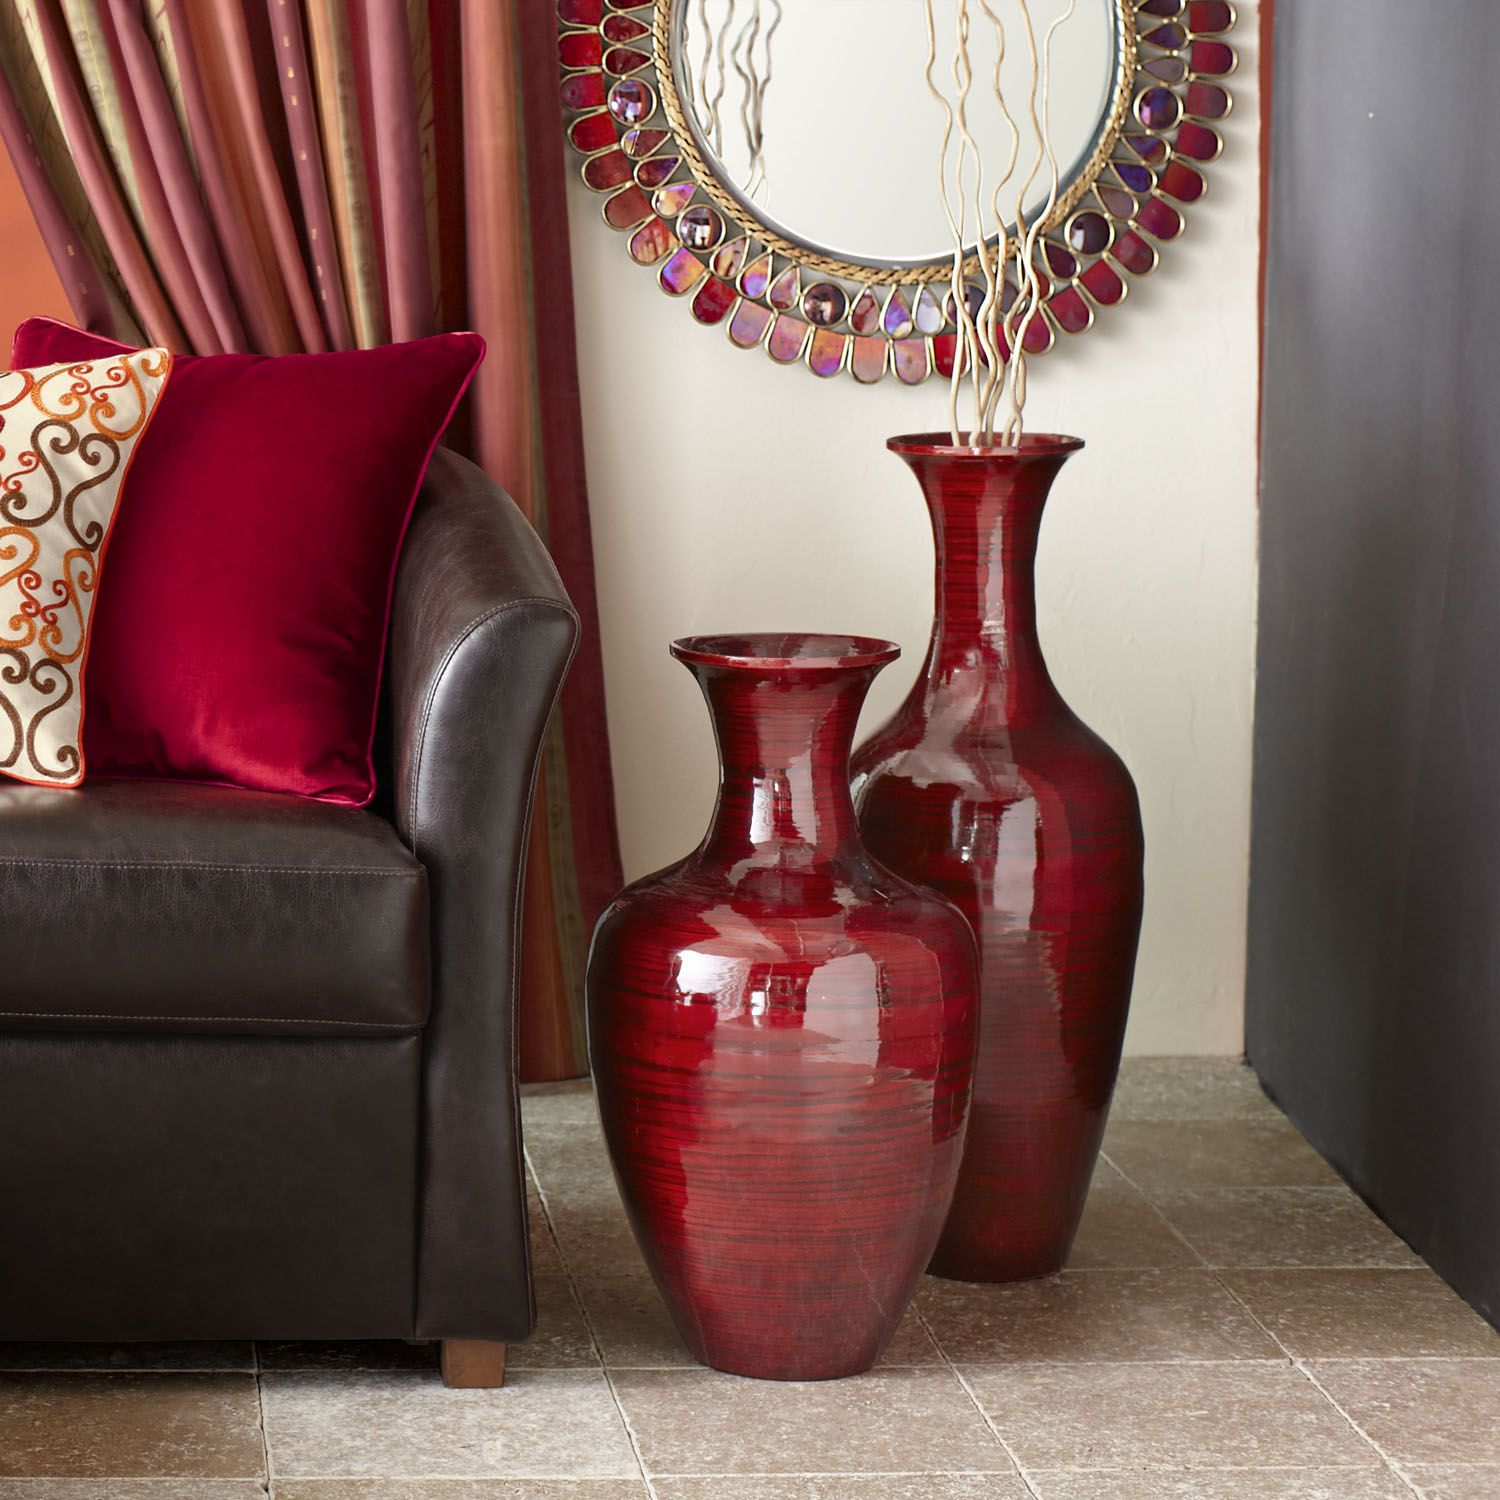 Glossy red bamboo urns vases room decorationsred decordecoration salon living also cove   urn and rooms rh pinterest